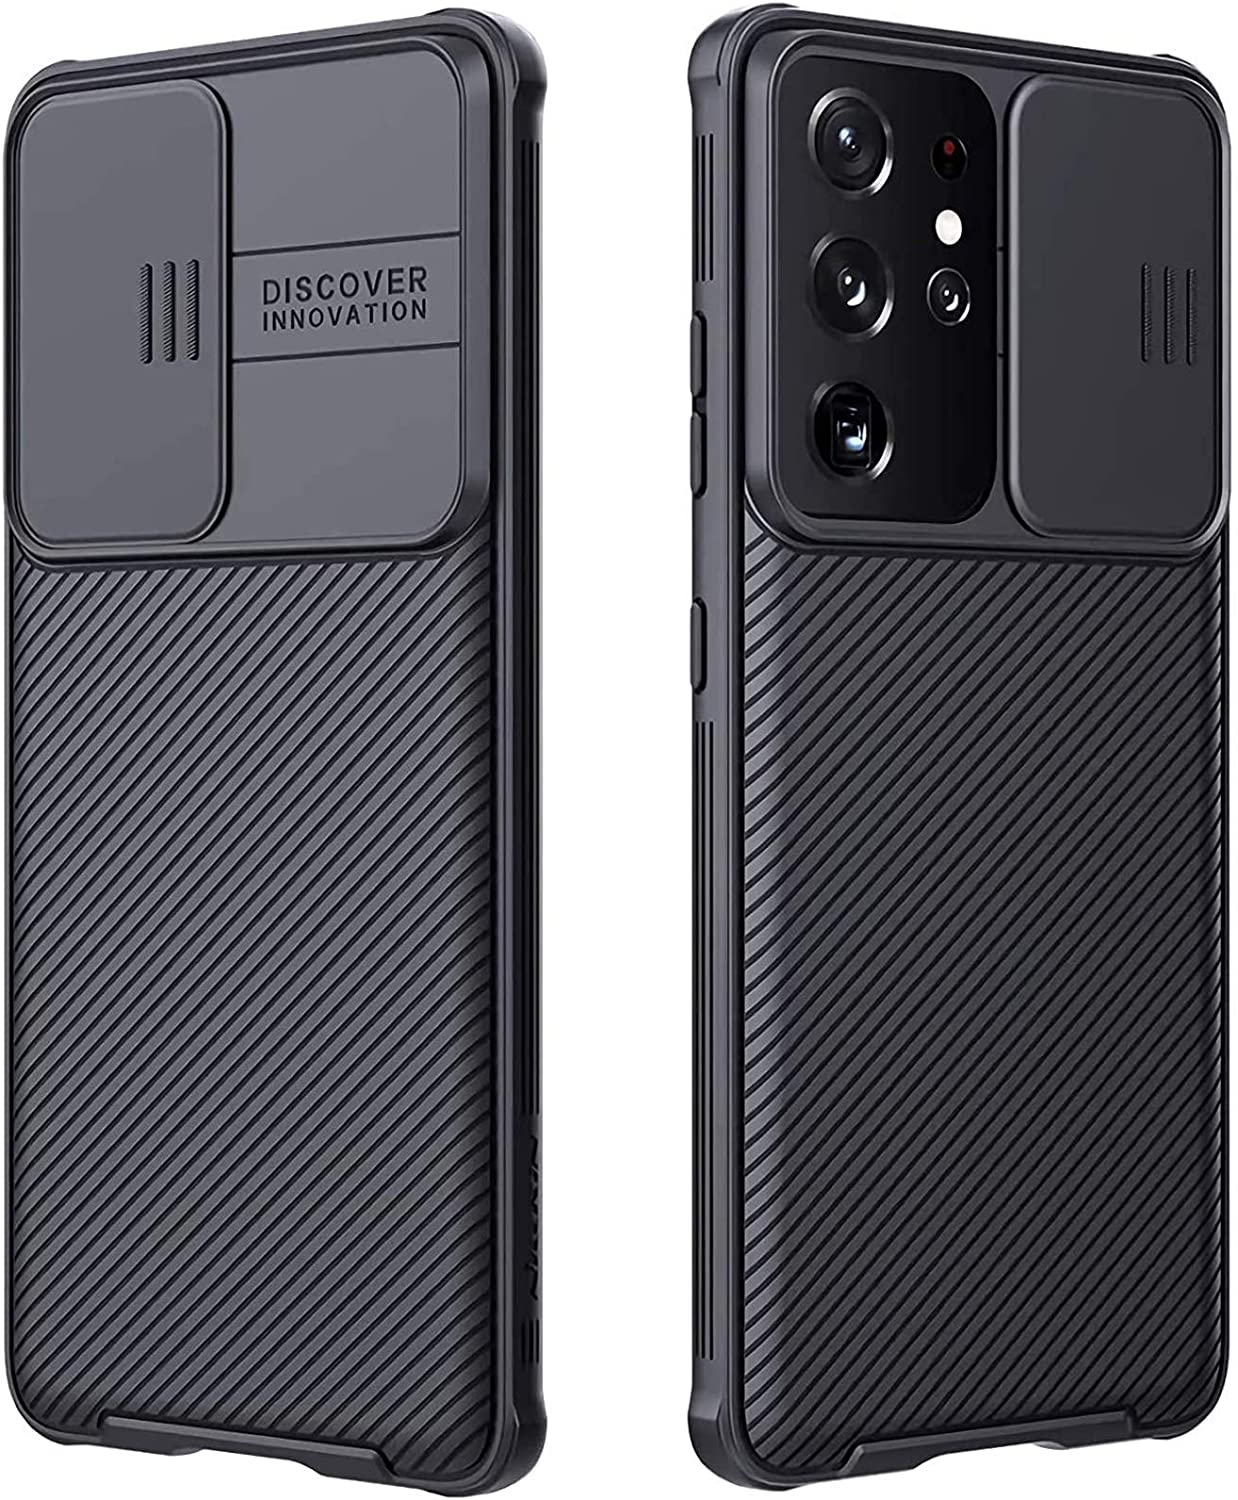 CloudValley for Samsung Galaxy S21 Ultra Case with Camera Cover, Full-Body Protective & Slim Fit, Camera Protection Case Only for Samsung Galaxy S21 Ultra 5G 6.8 inch (2021 Release), Black